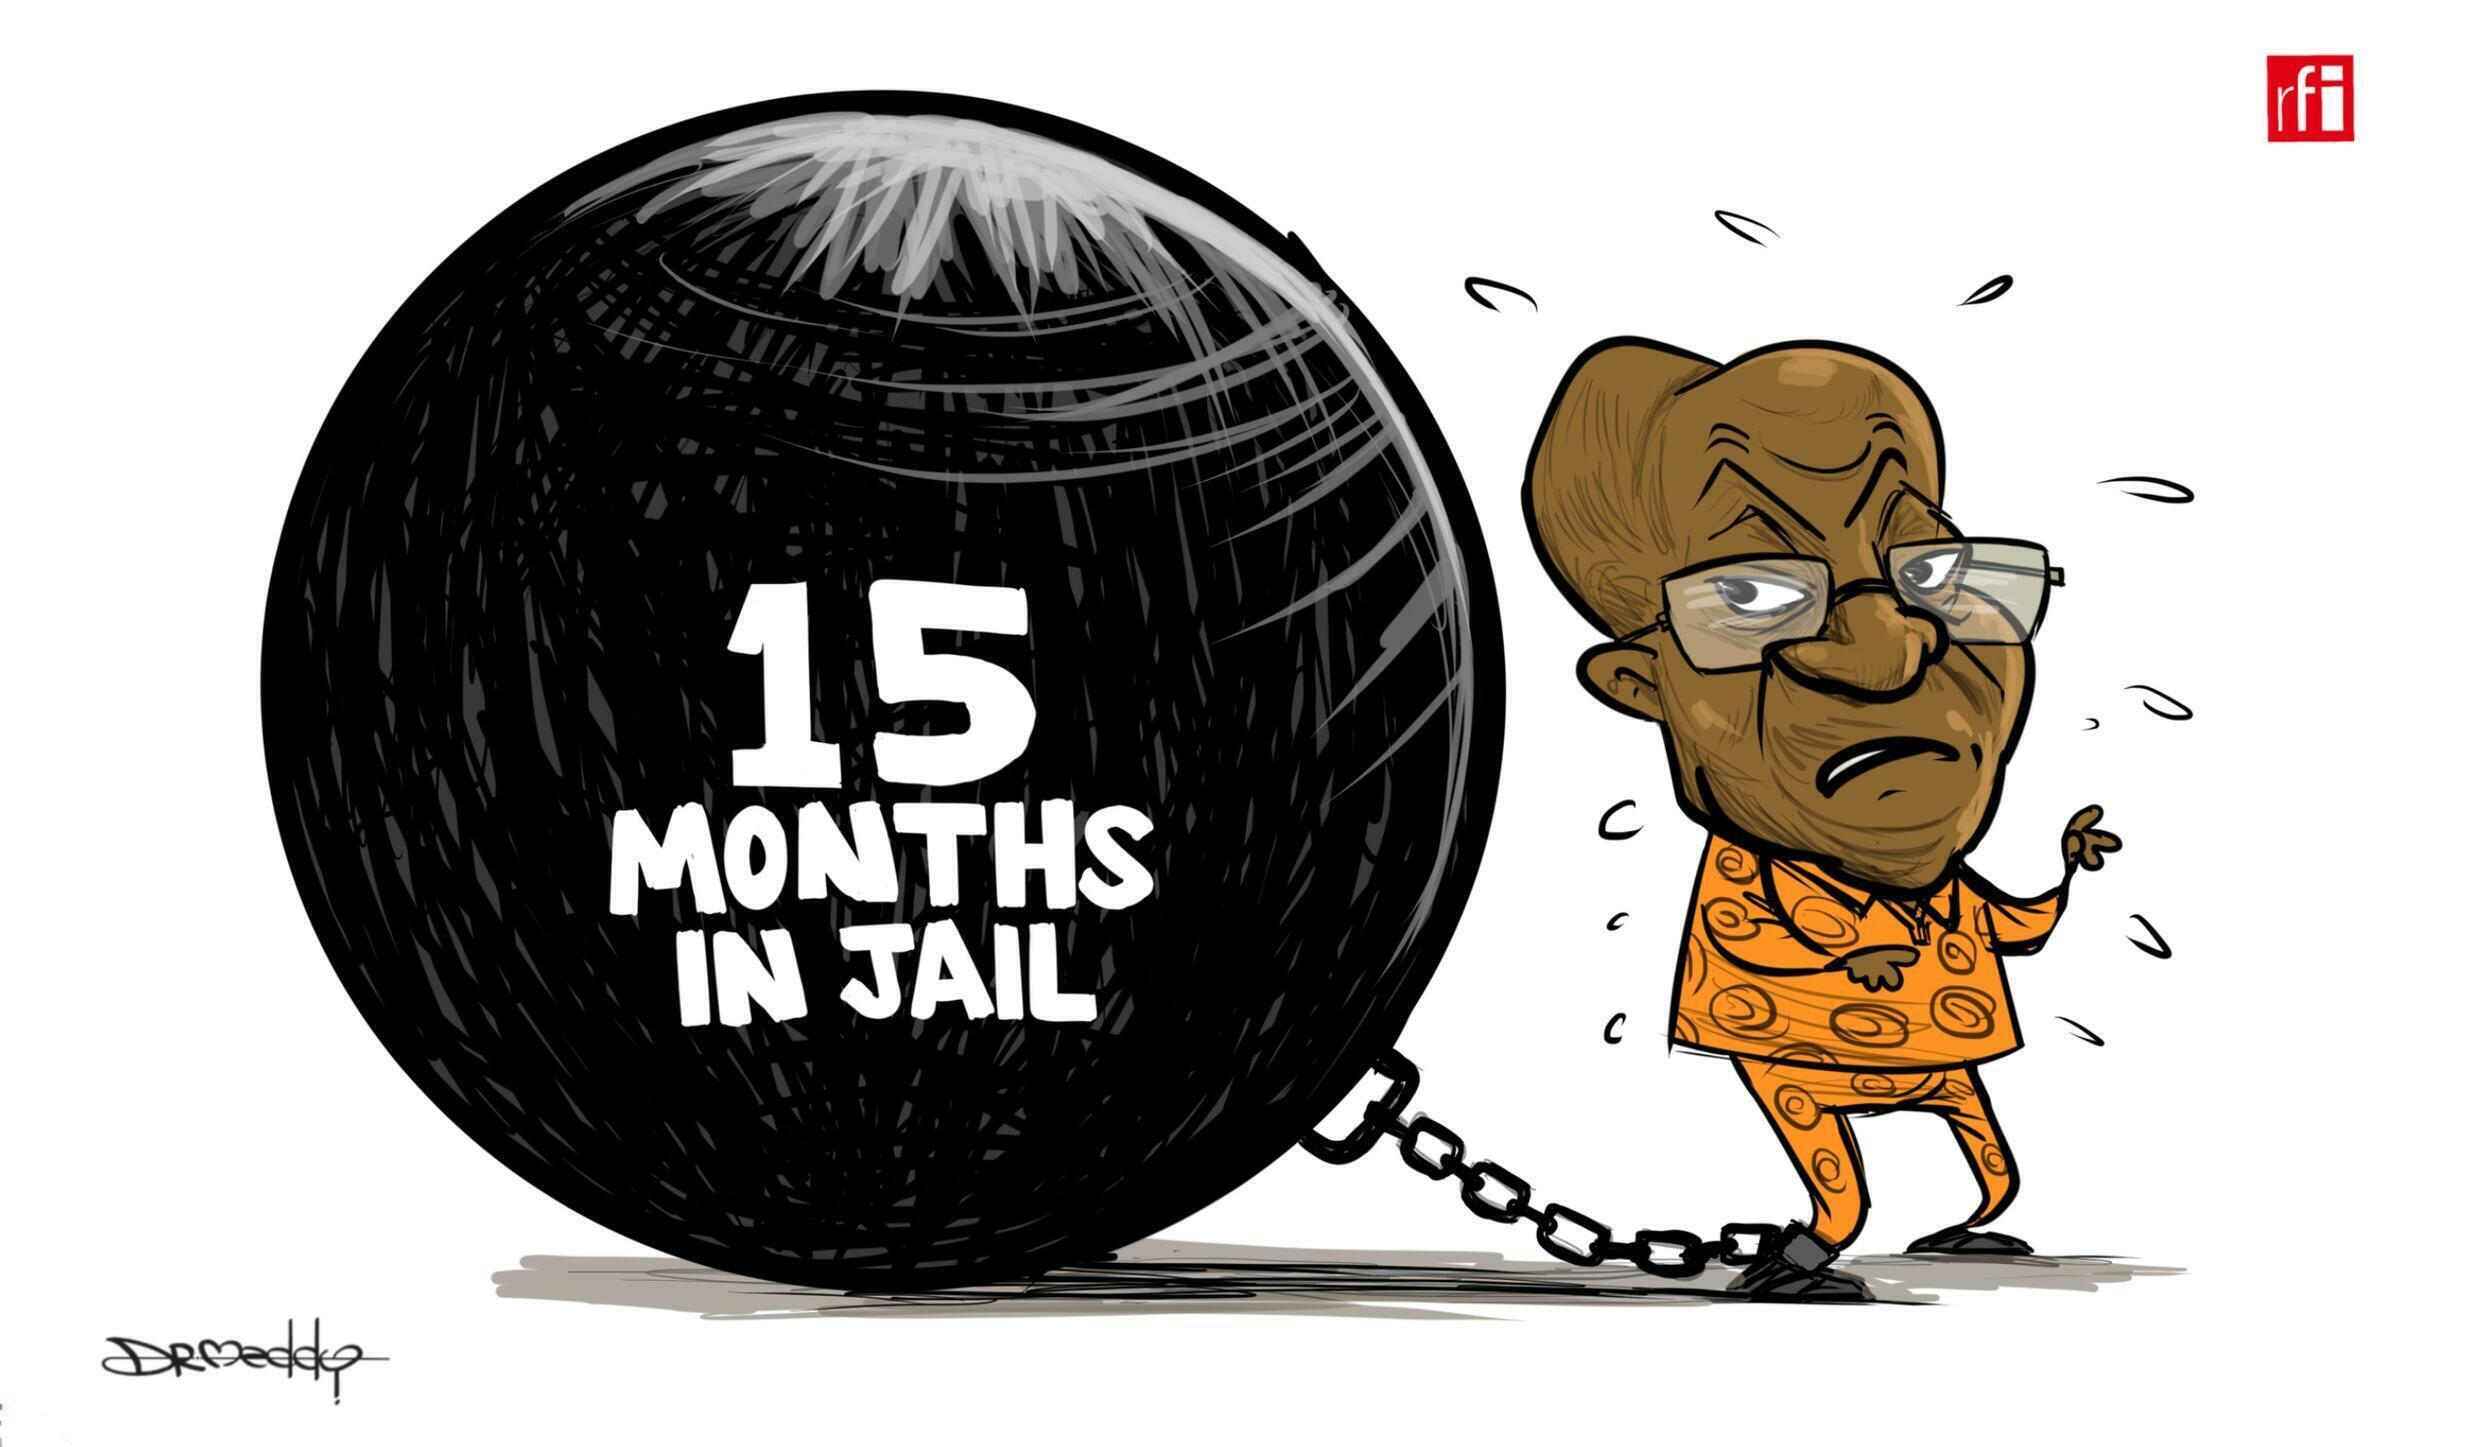 South Africa: Former President Jacob  Zuma Sentenced to 15 Months in Jail (02/07/2021)